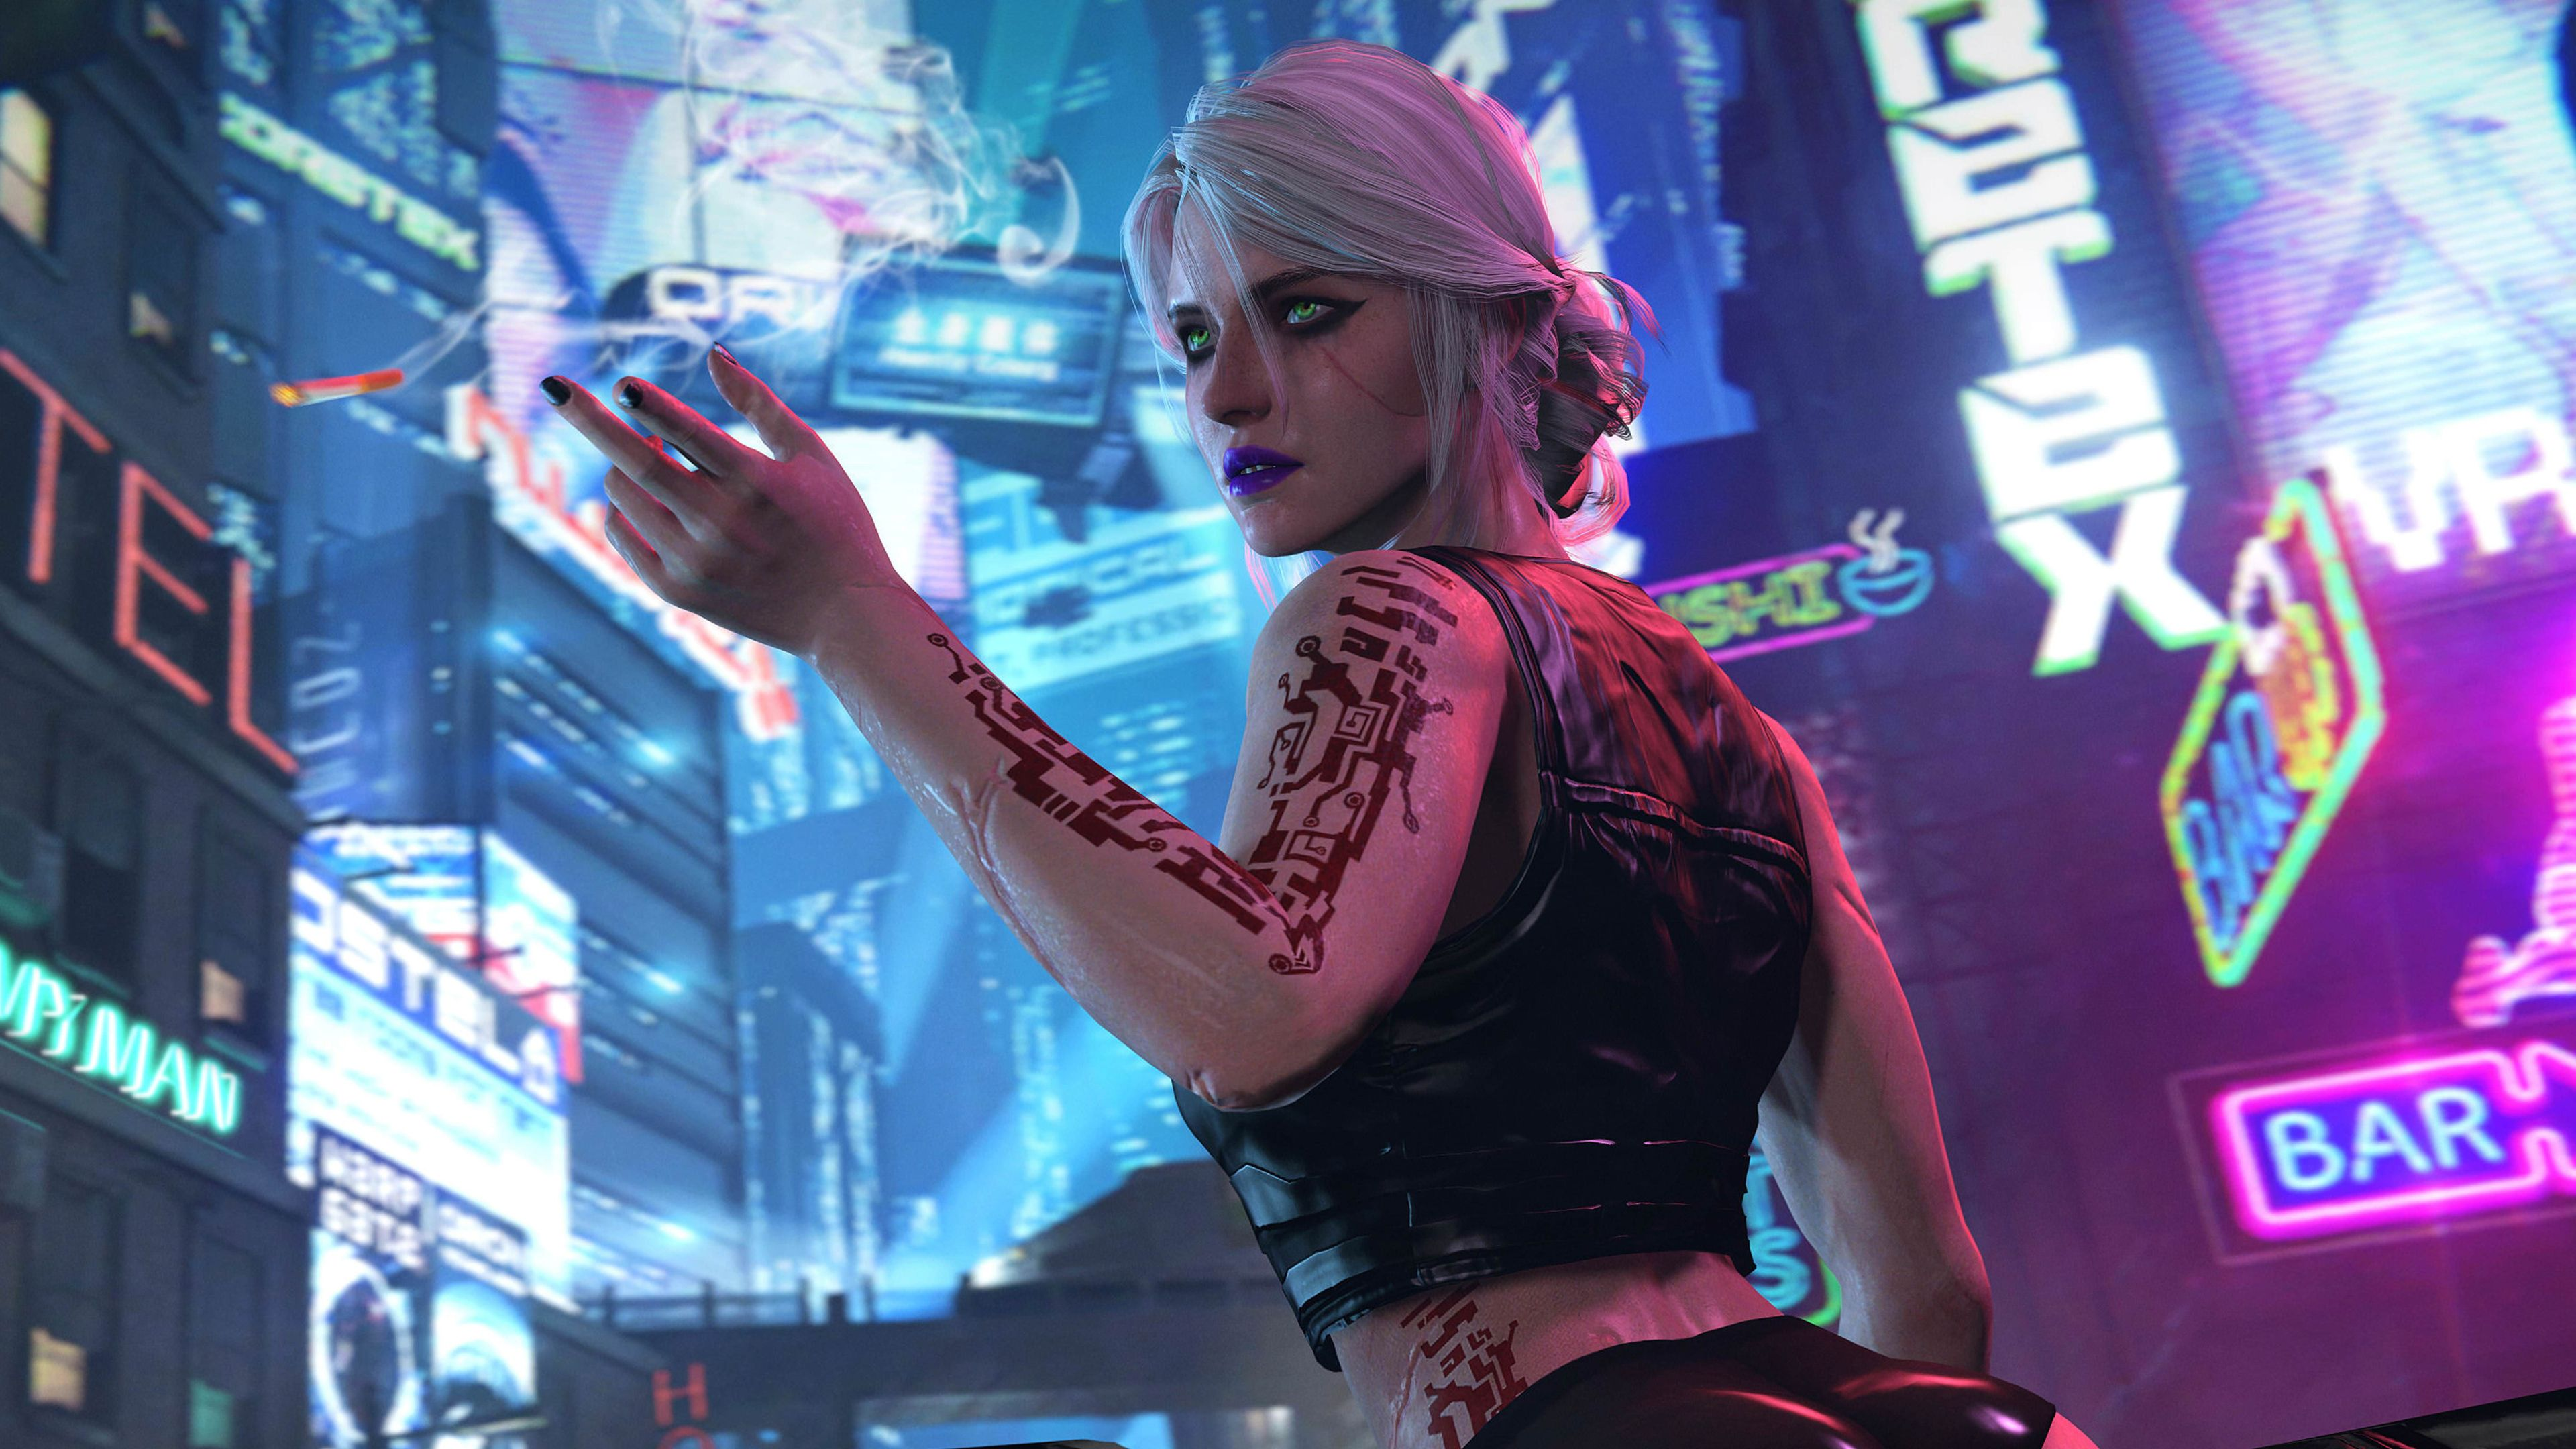 Ciri Cyberpunk 2077 4k Xbox Games Wallpapers Scifi Wallpapers Ps Games Wallpapers Pc Games Wallpapers Neon Wallpape Pc Games Wallpapers Ciri Cyberpunk 2077